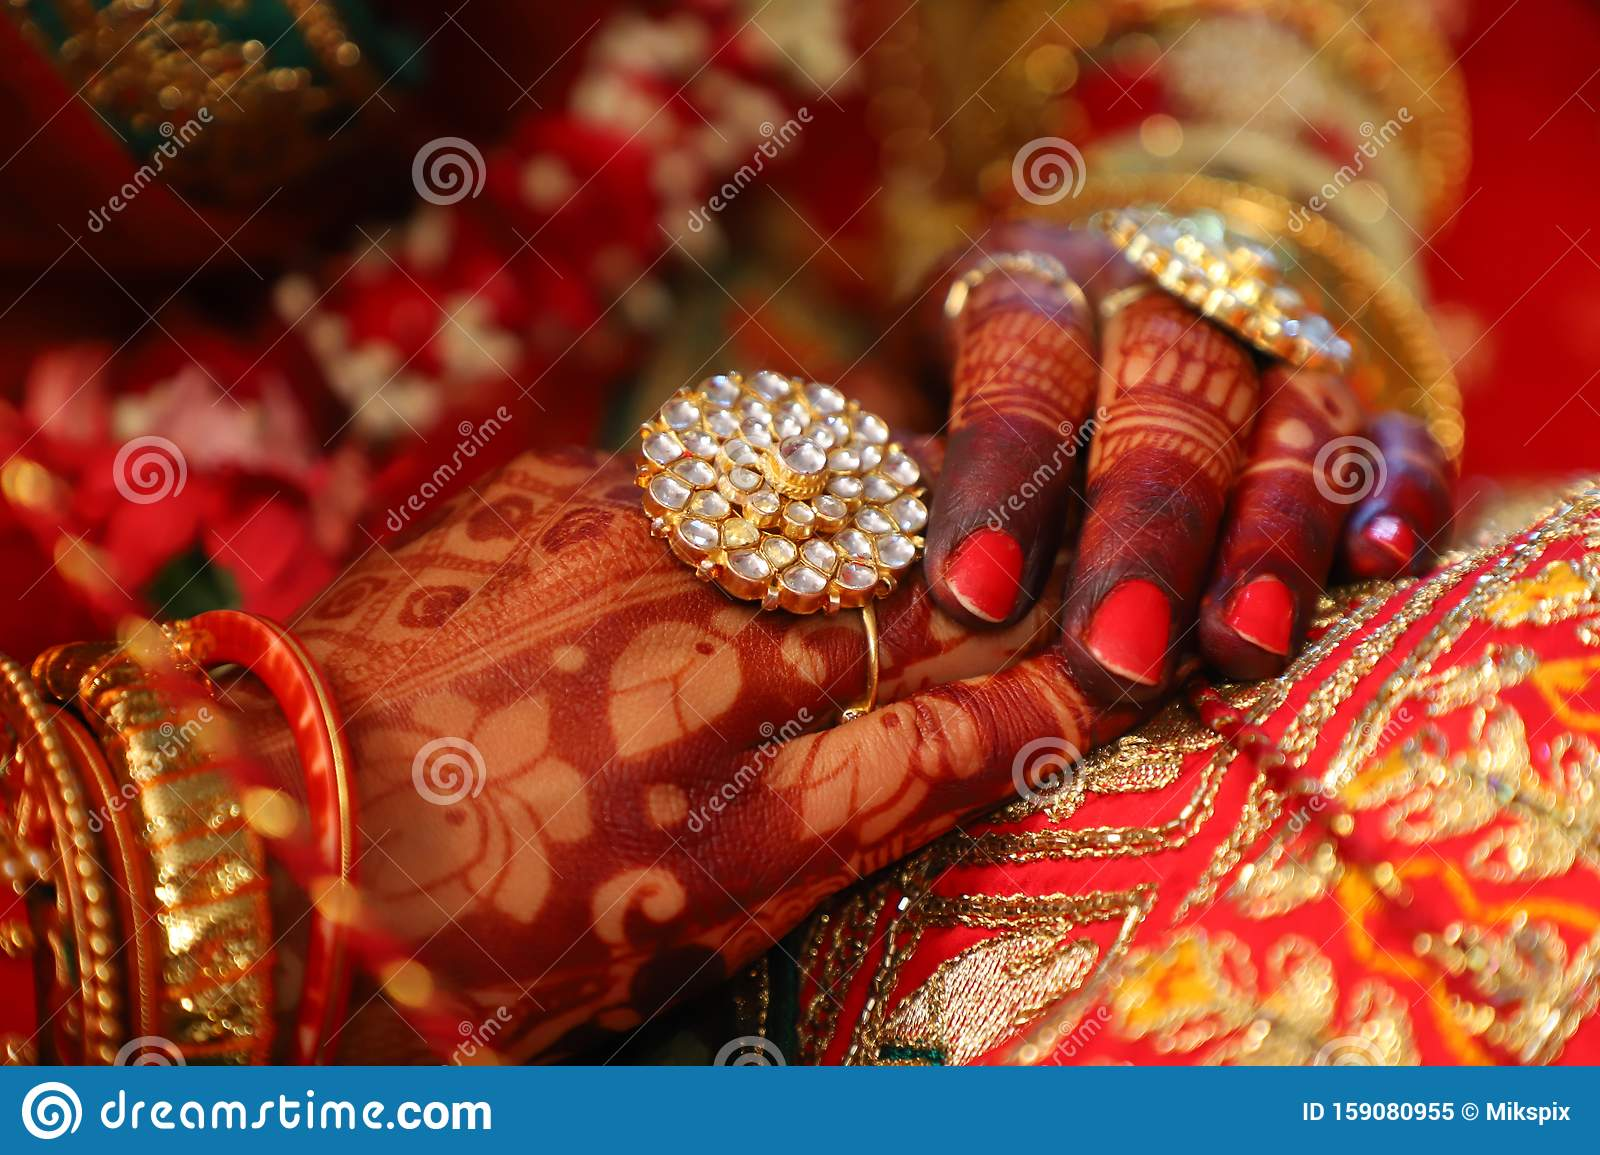 11 337 Indian Marriage Photos Free Royalty Free Stock Photos From Dreamstime Find the perfect marriage stock photos and editorial news pictures from getty images. https www dreamstime com kalsah pooja indian marriage kalash consier as holy formaliies weddings sukan nariyal hand mehndi tatoo plate culture image159080955